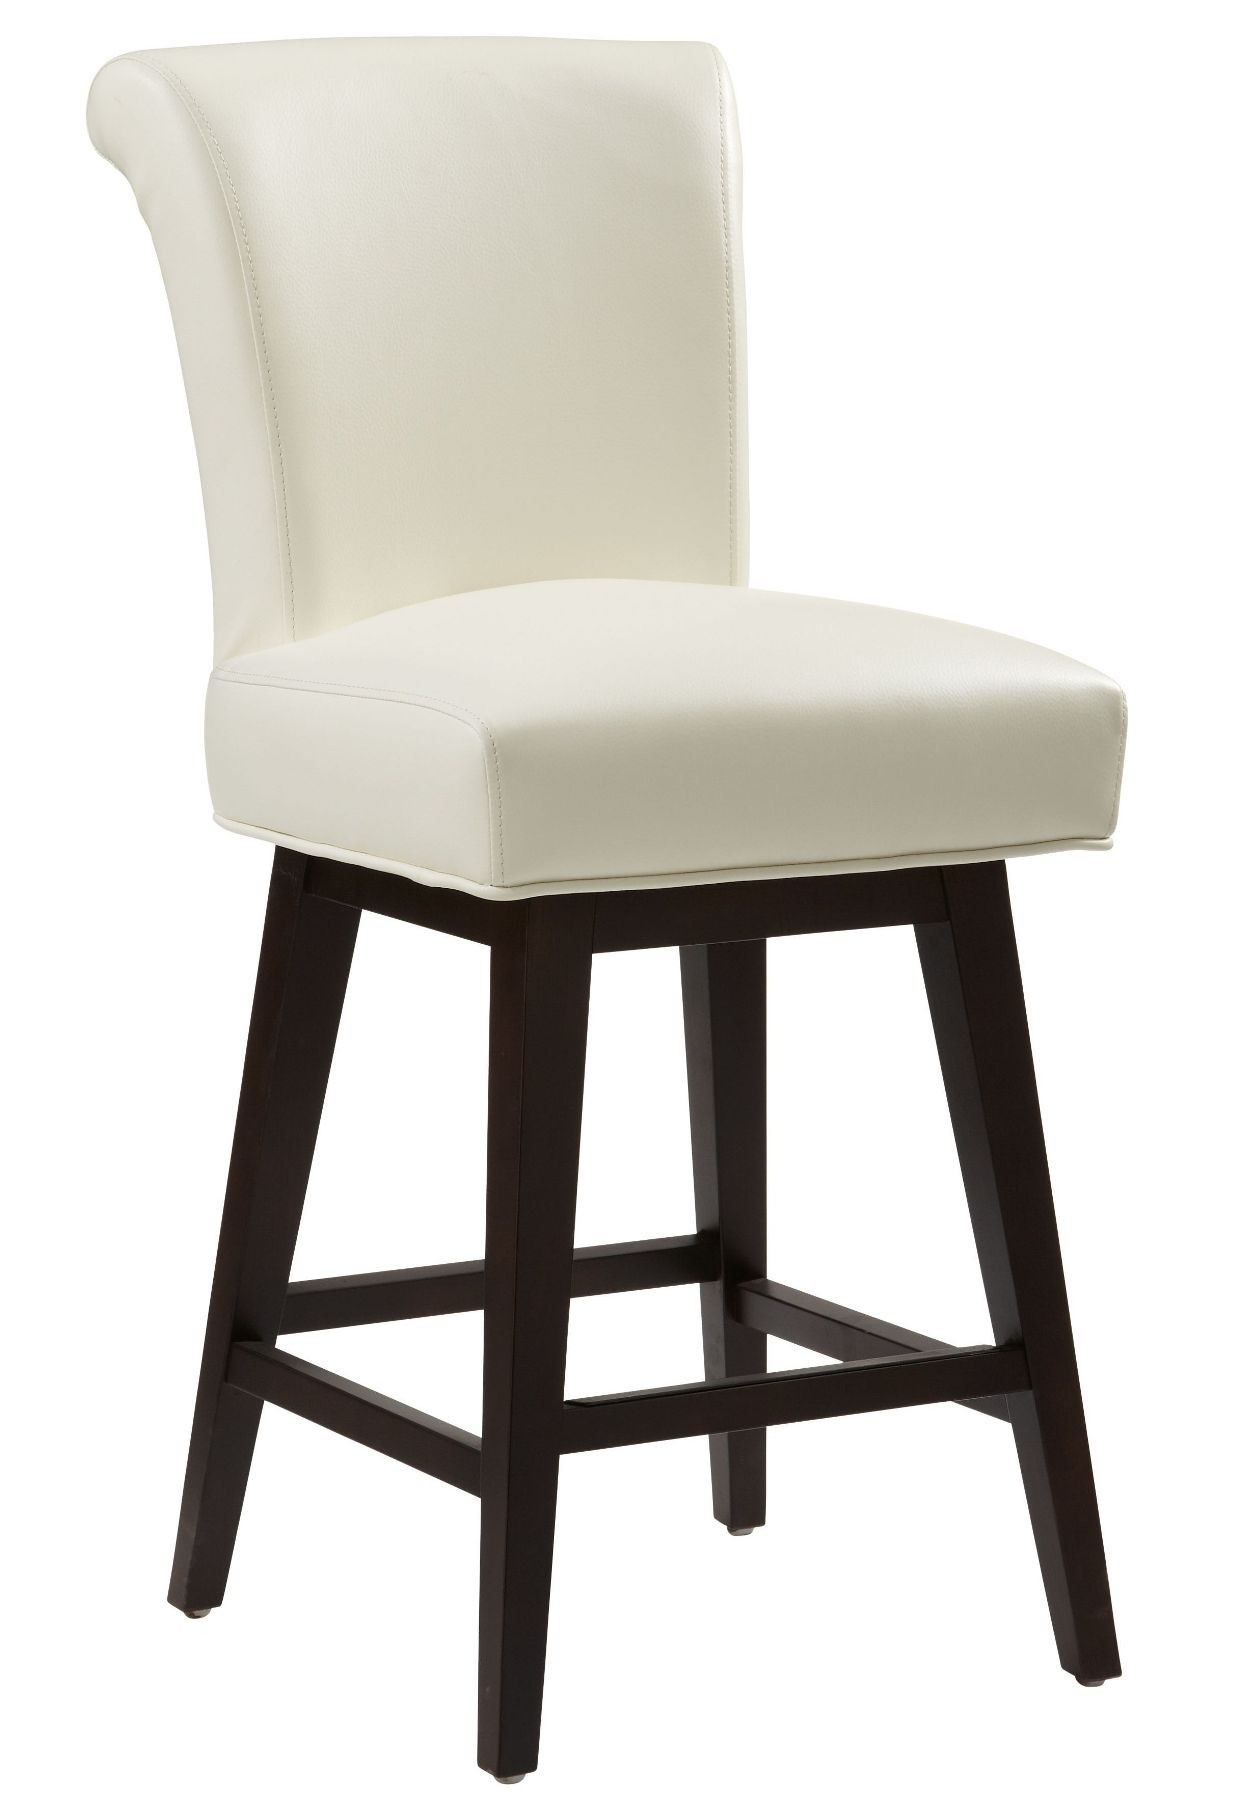 Hamlet Ivory Swivel Counter Stool From Sunpan 74926